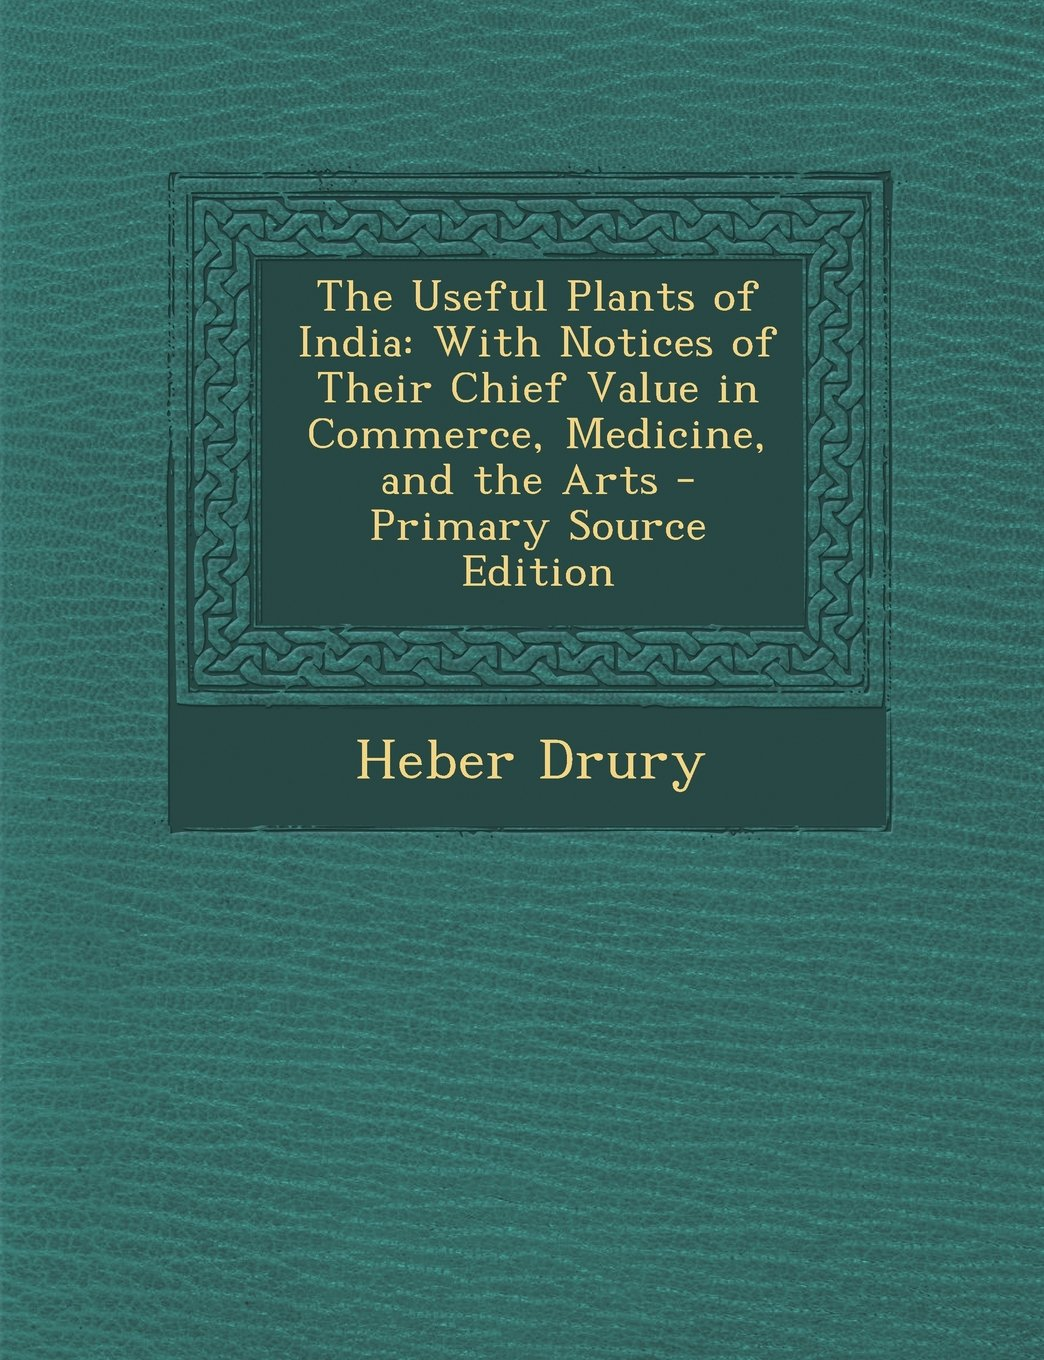 The Useful Plants of India: With Notices of Their Chief Value in Commerce, Medicine, and the Arts pdf epub